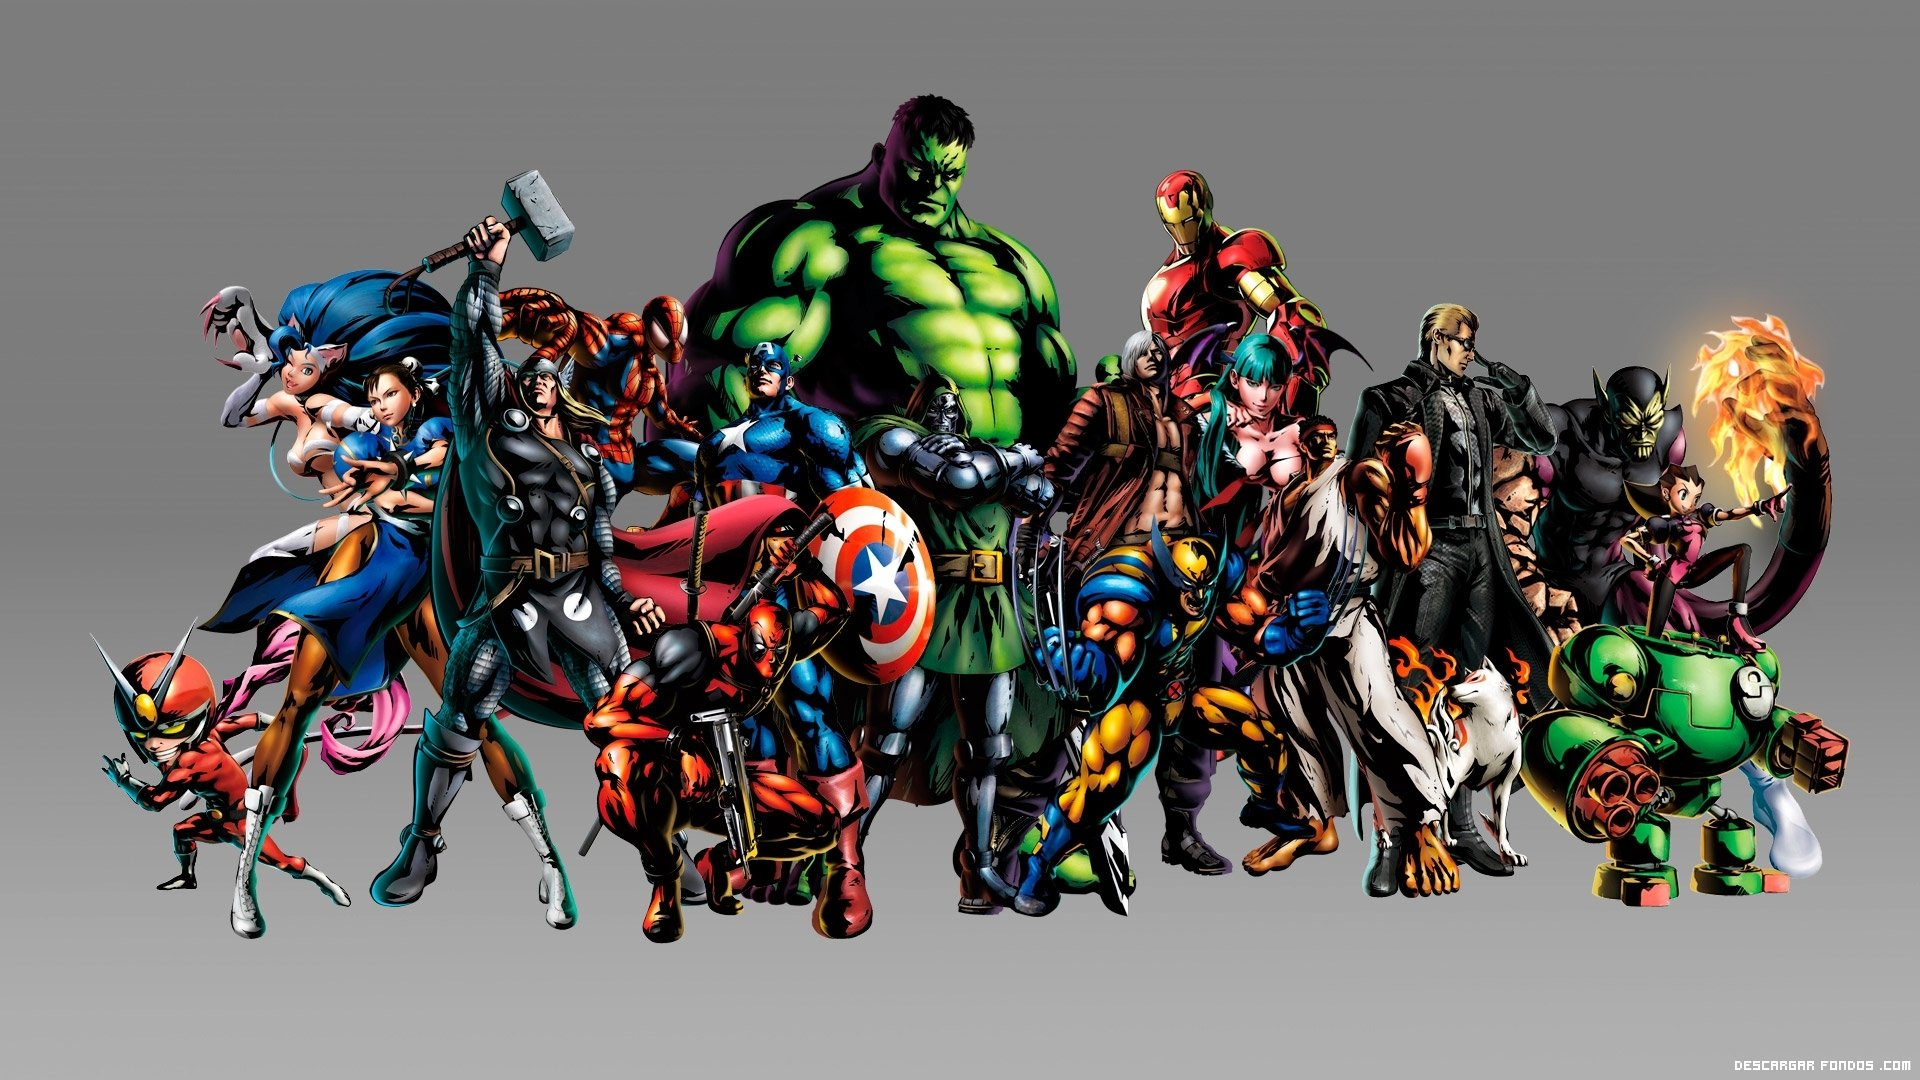 hd wallpapers super herois - photo #26